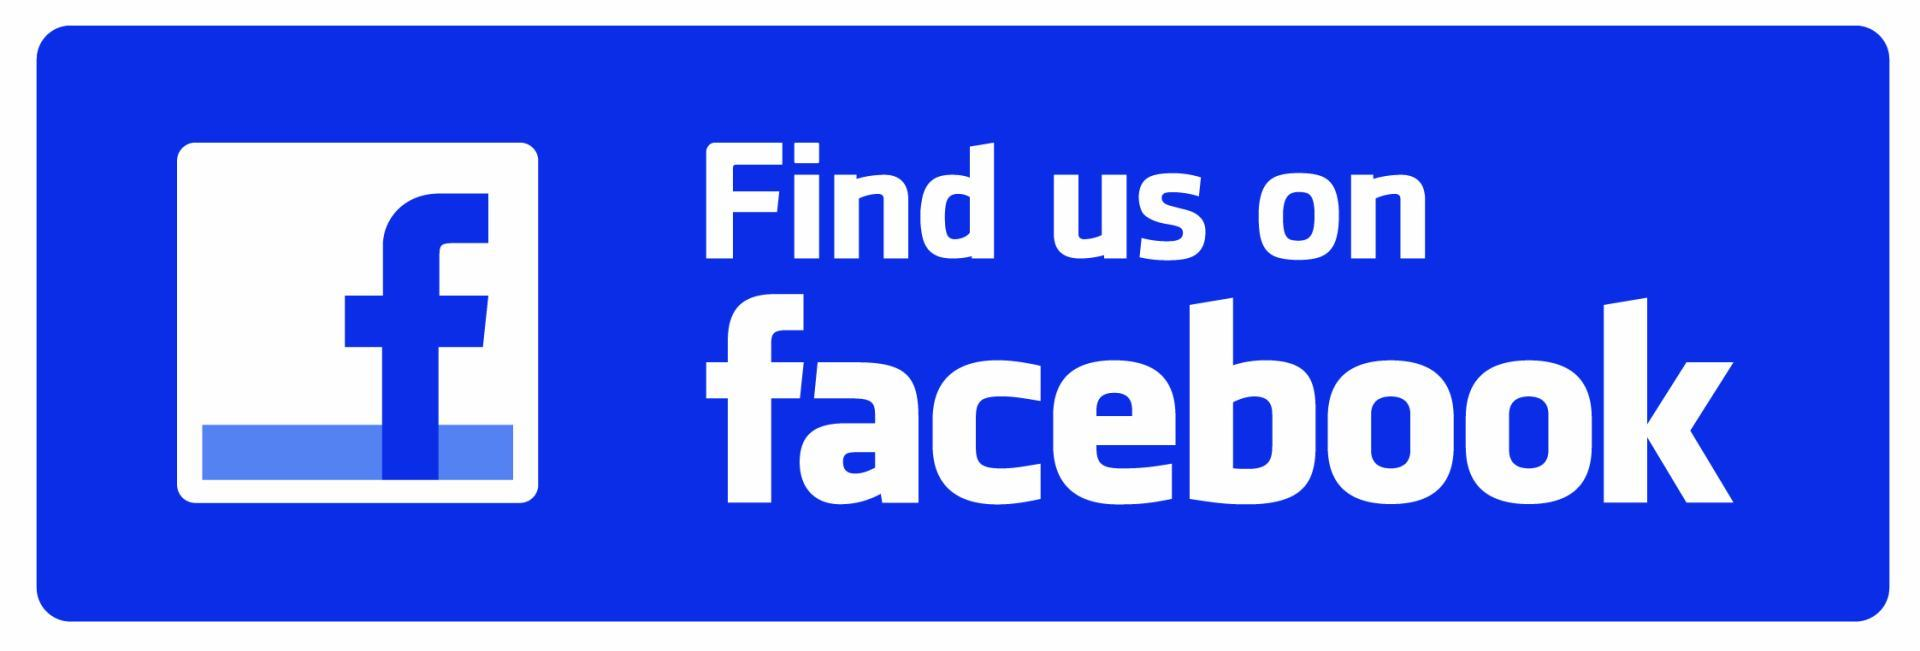 Facebook_logo_vector-8 (1)